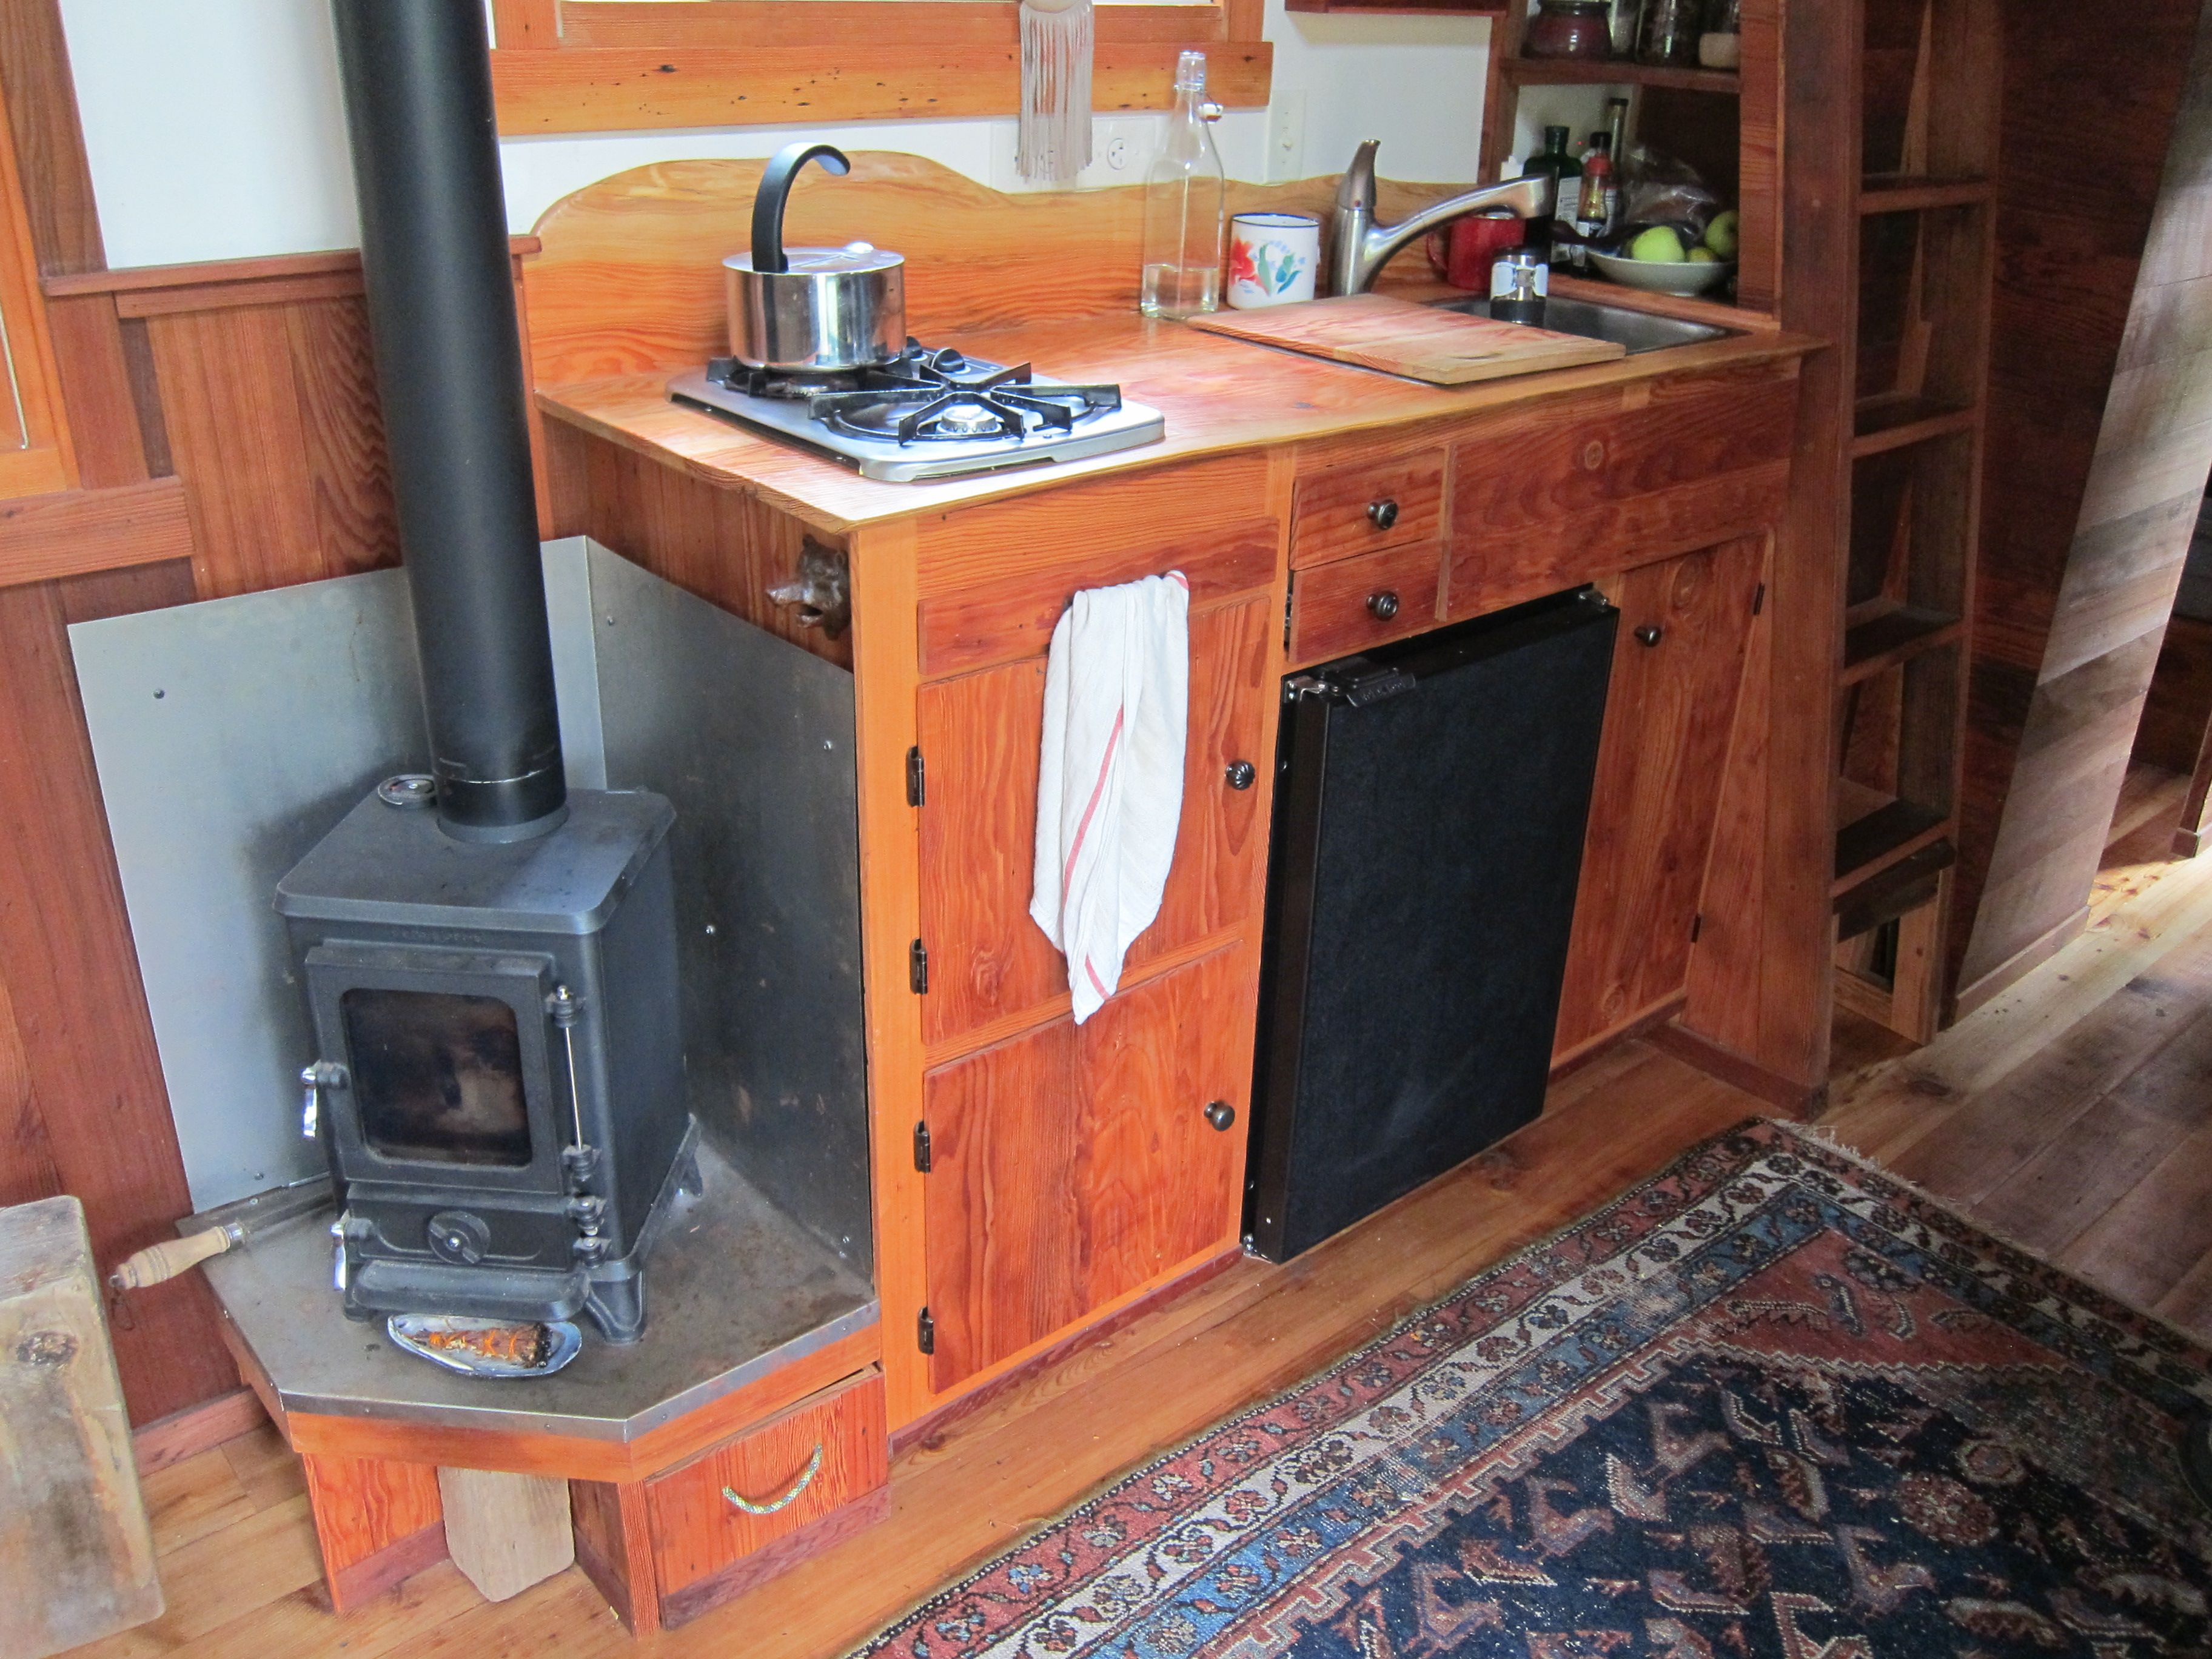 This adorable tiny woodstove is next to a gorgeous custom door